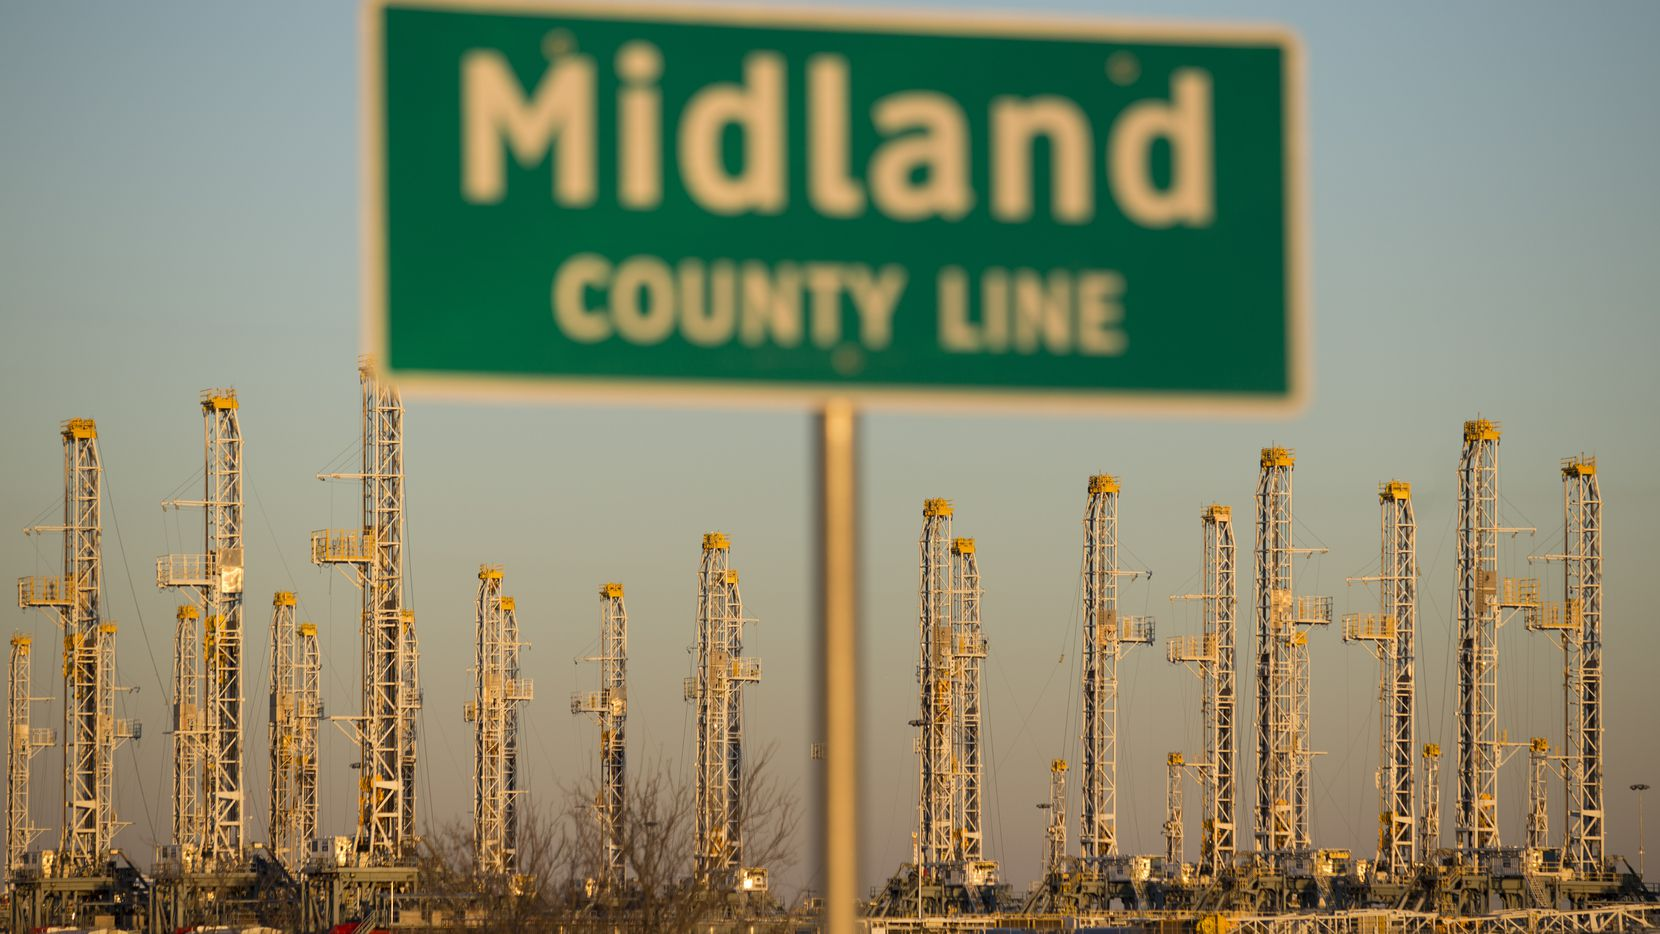 Midland was the country's hottest home market in May, according to Realtor.com.